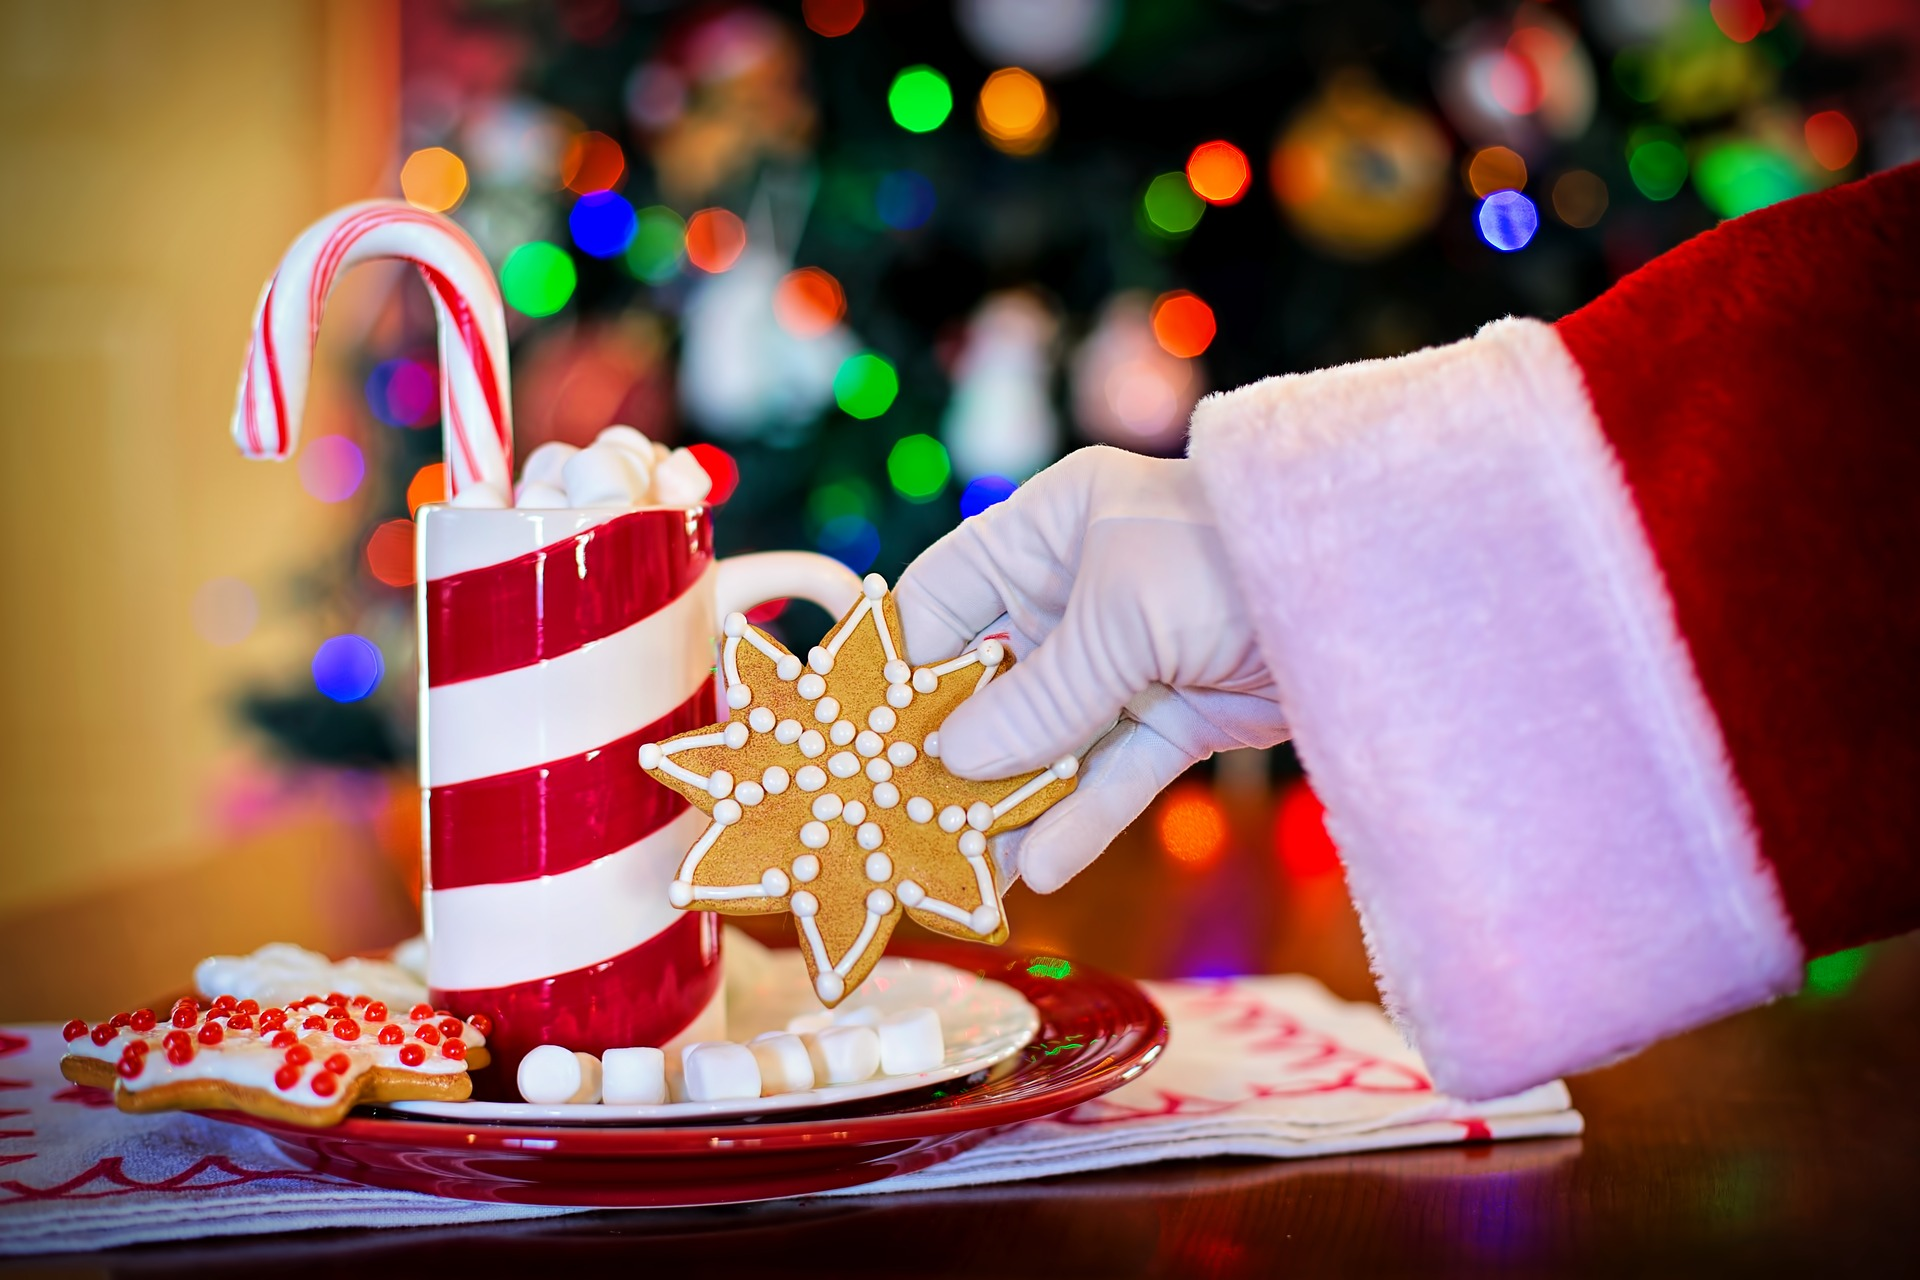 santa's arm holding cookies & hot chocolate